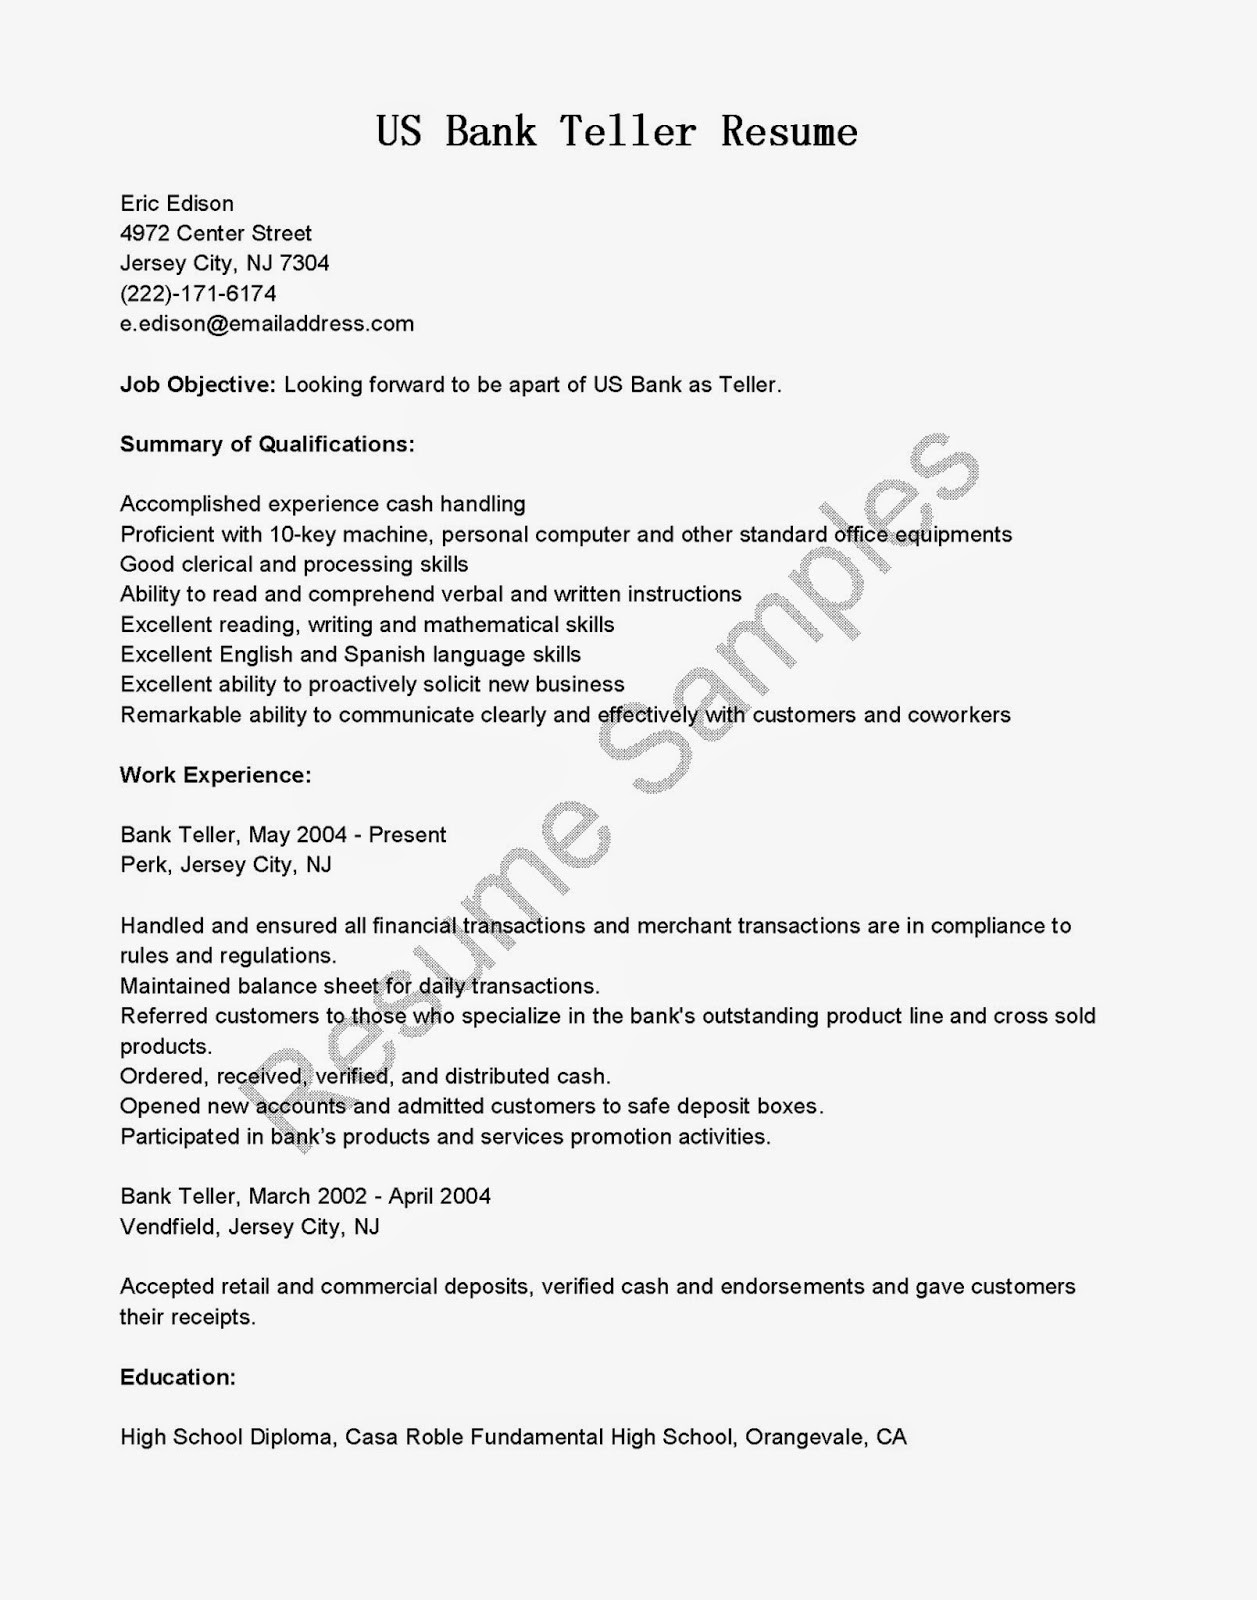 Teller Resume Examples Bank Teller Supervisor Resume Bank Teller ...